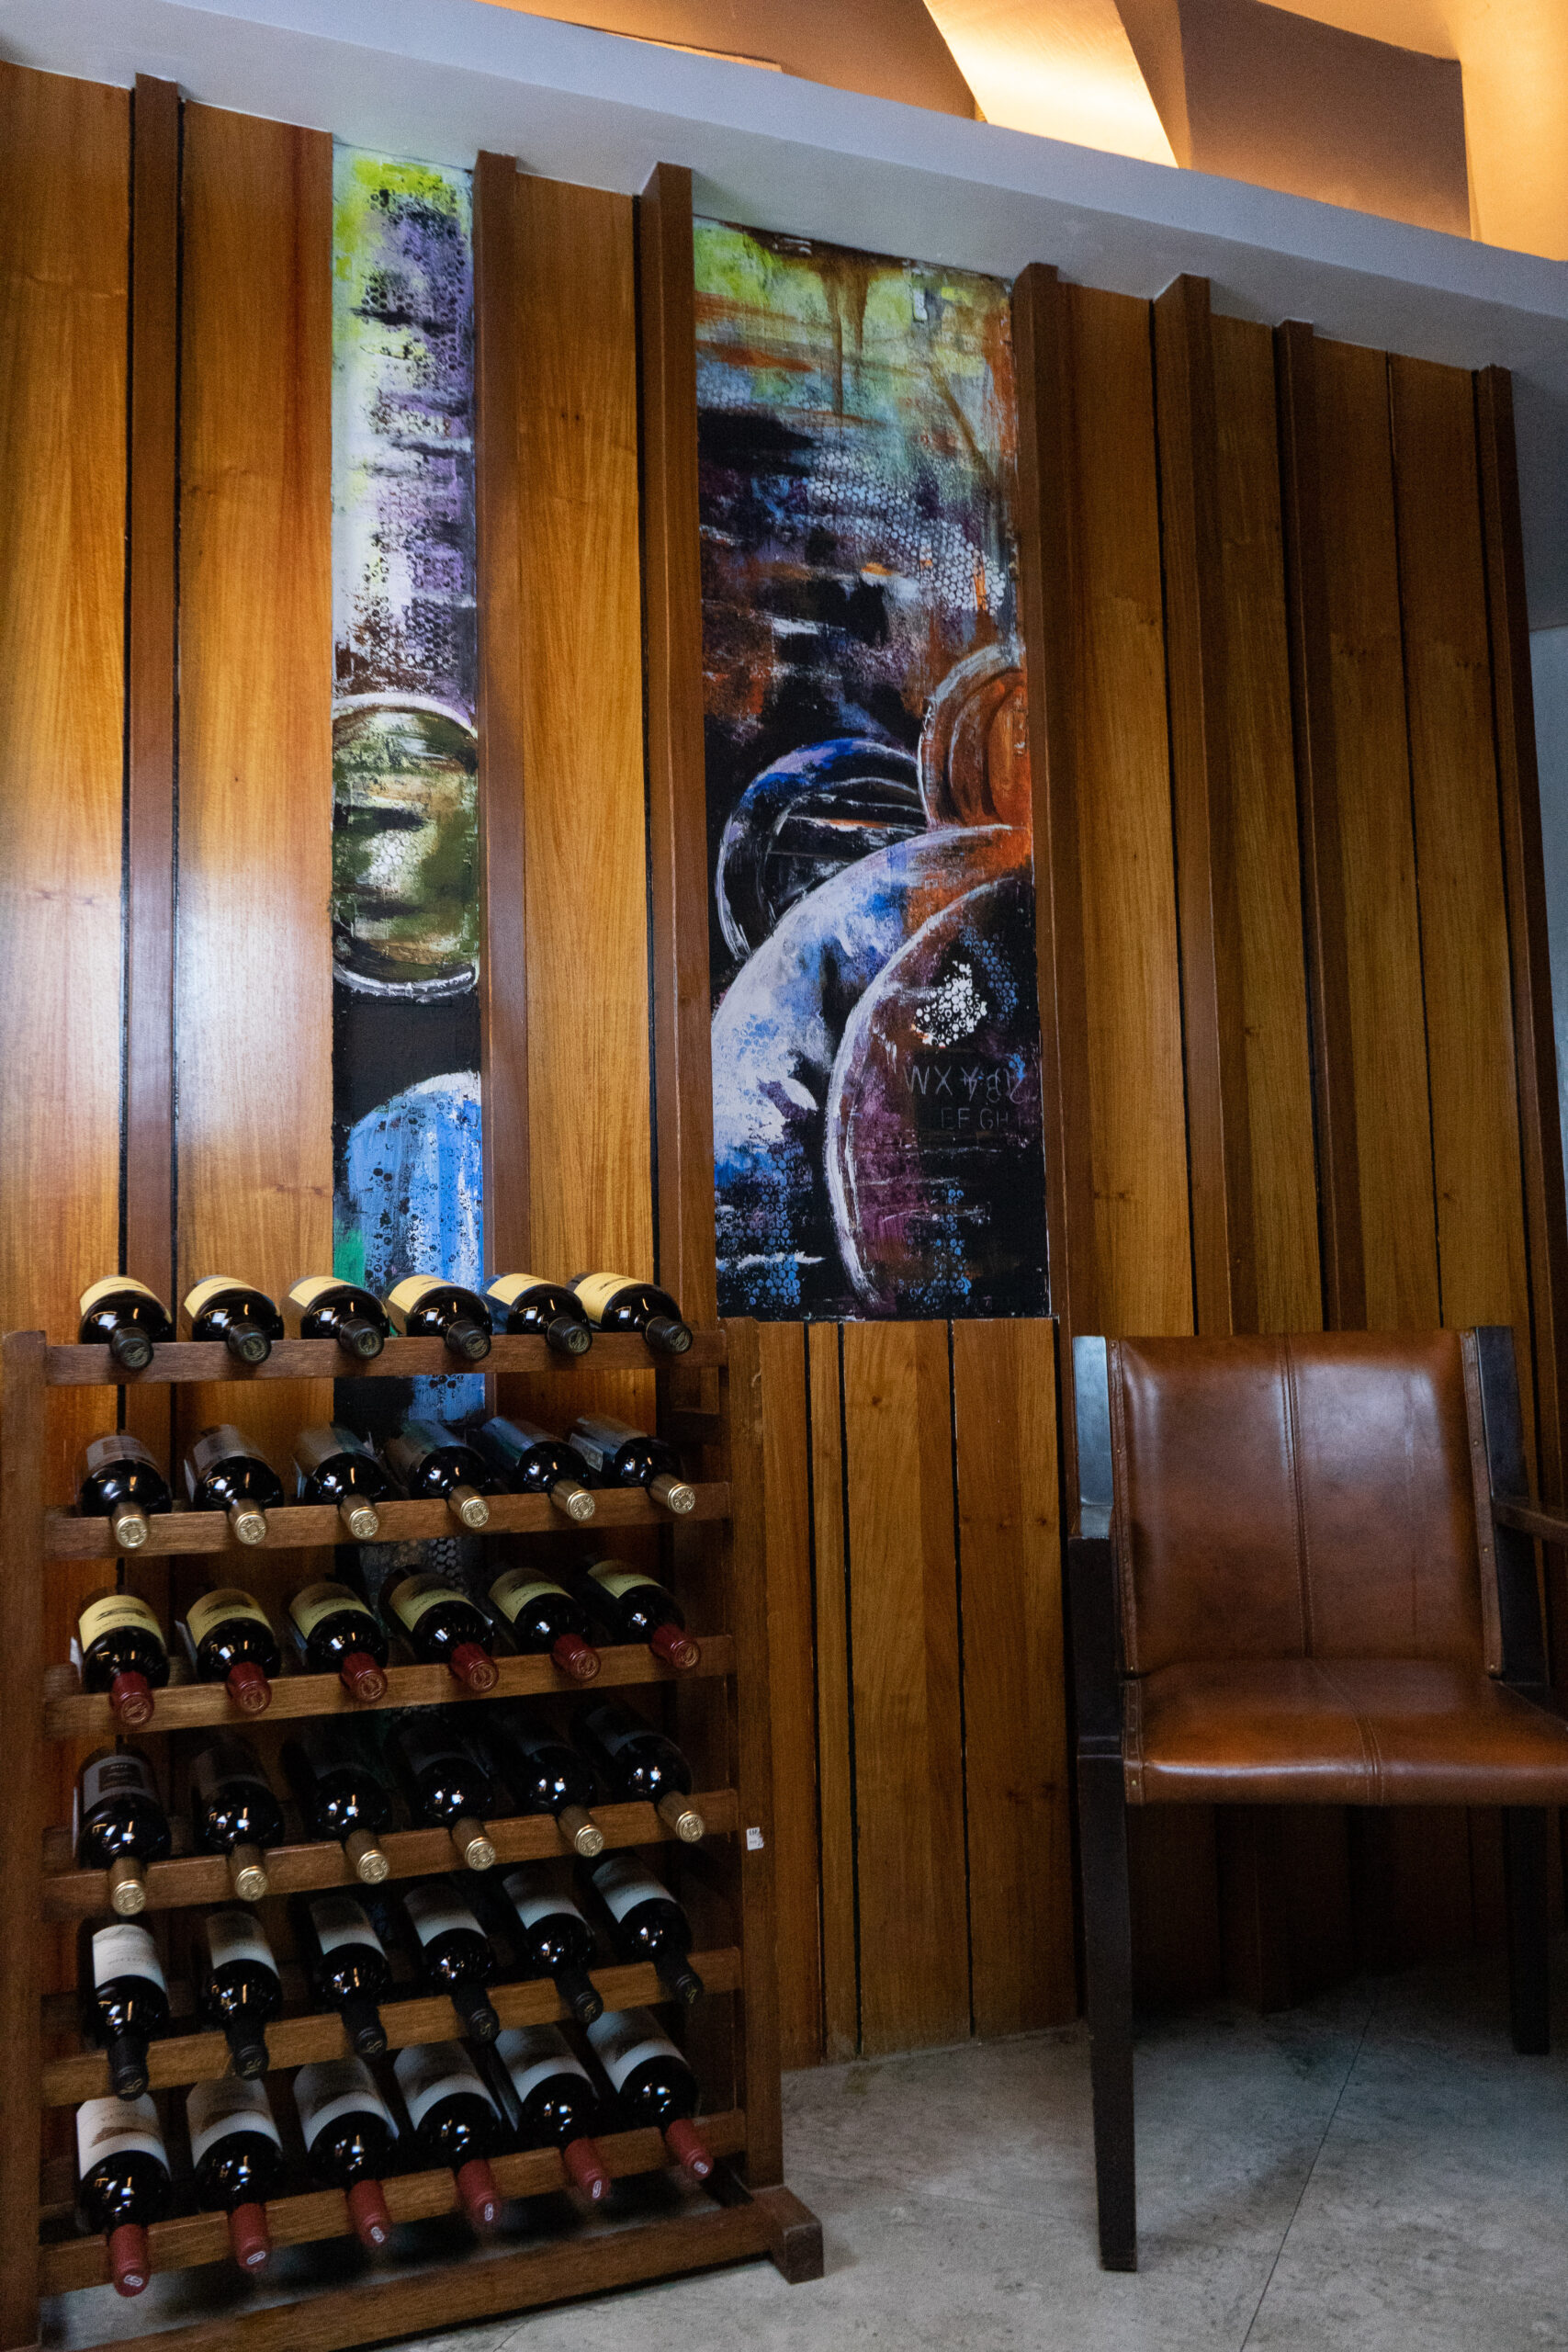 Different types of wines in the rack | The Wine Club Philippines